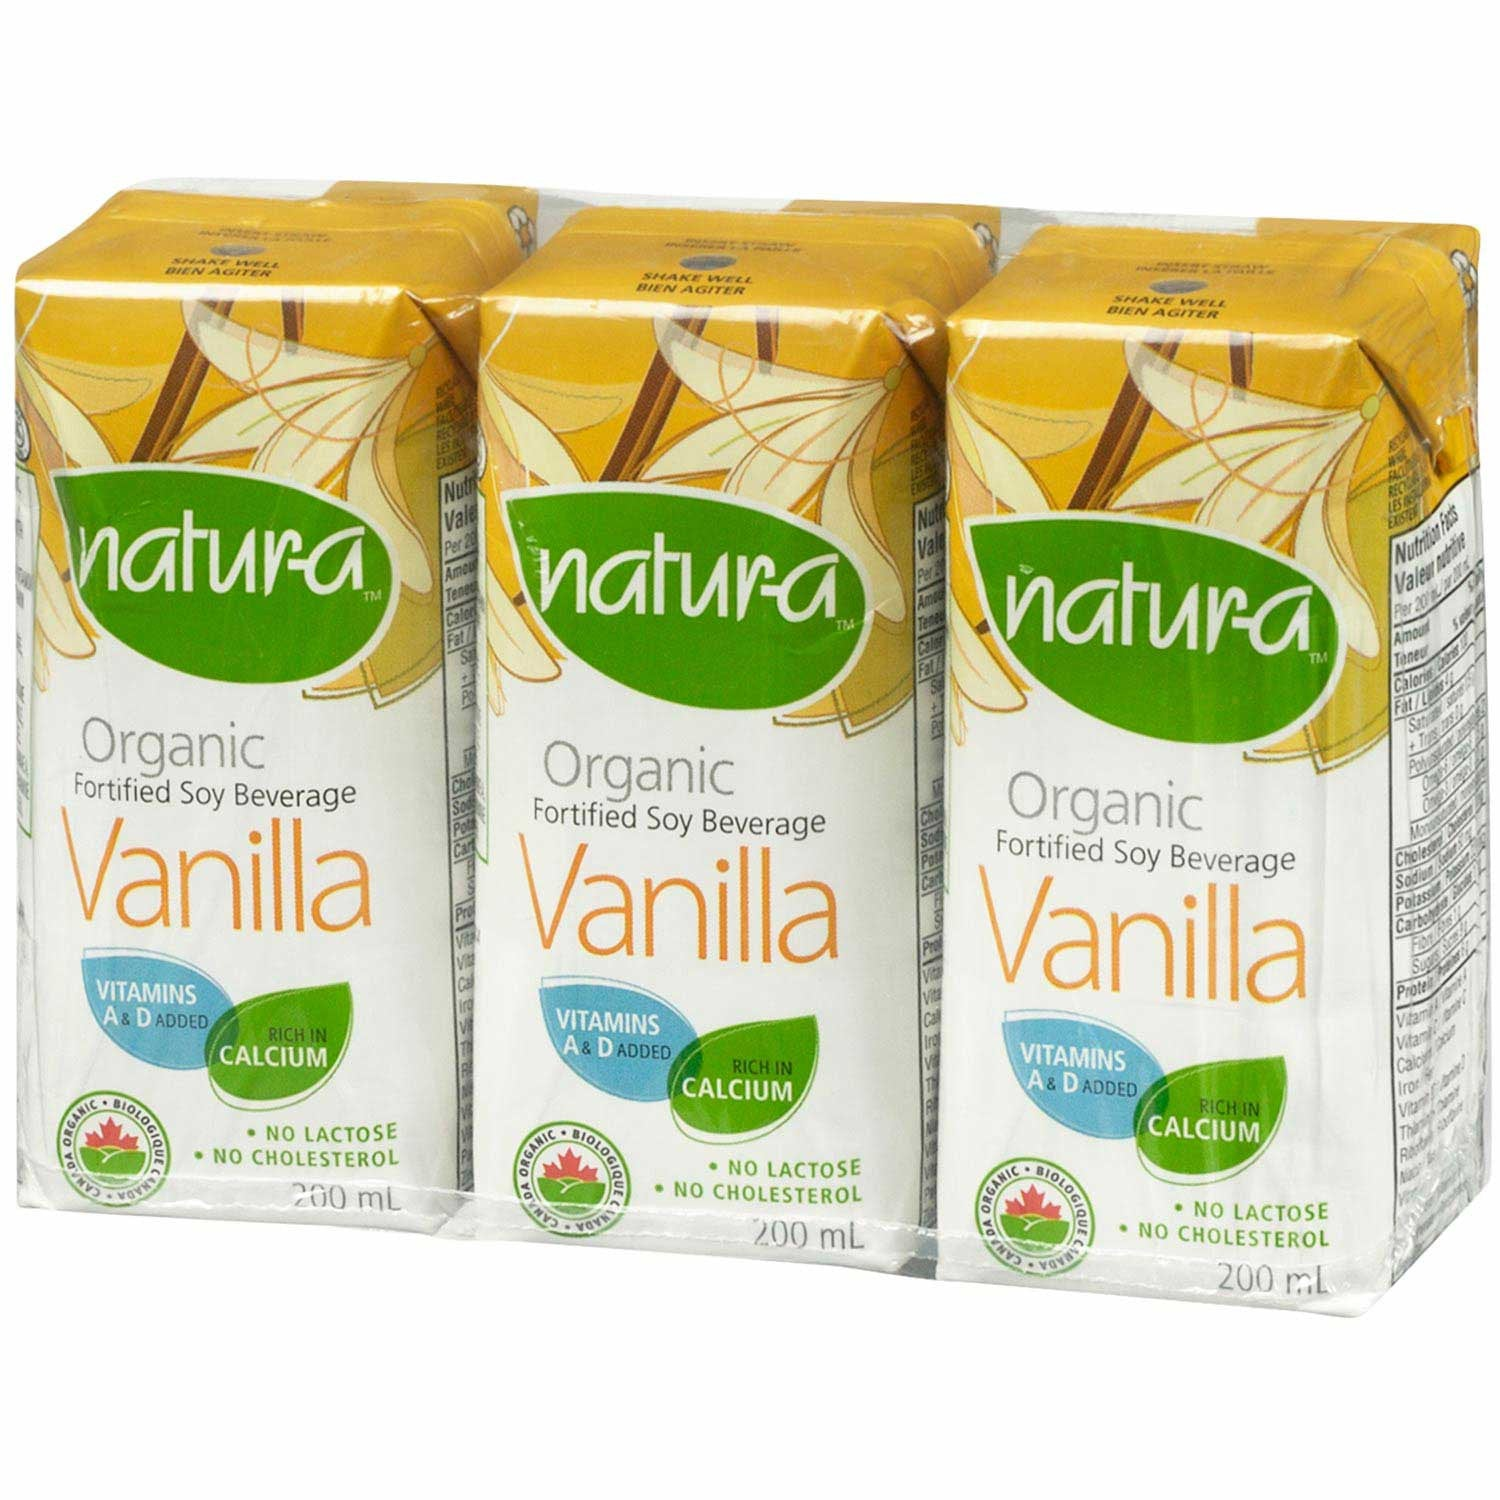 Natur-a Enriched Soy Beverage - Vanilla (Organic), 200 ml.-NaturesWisdom